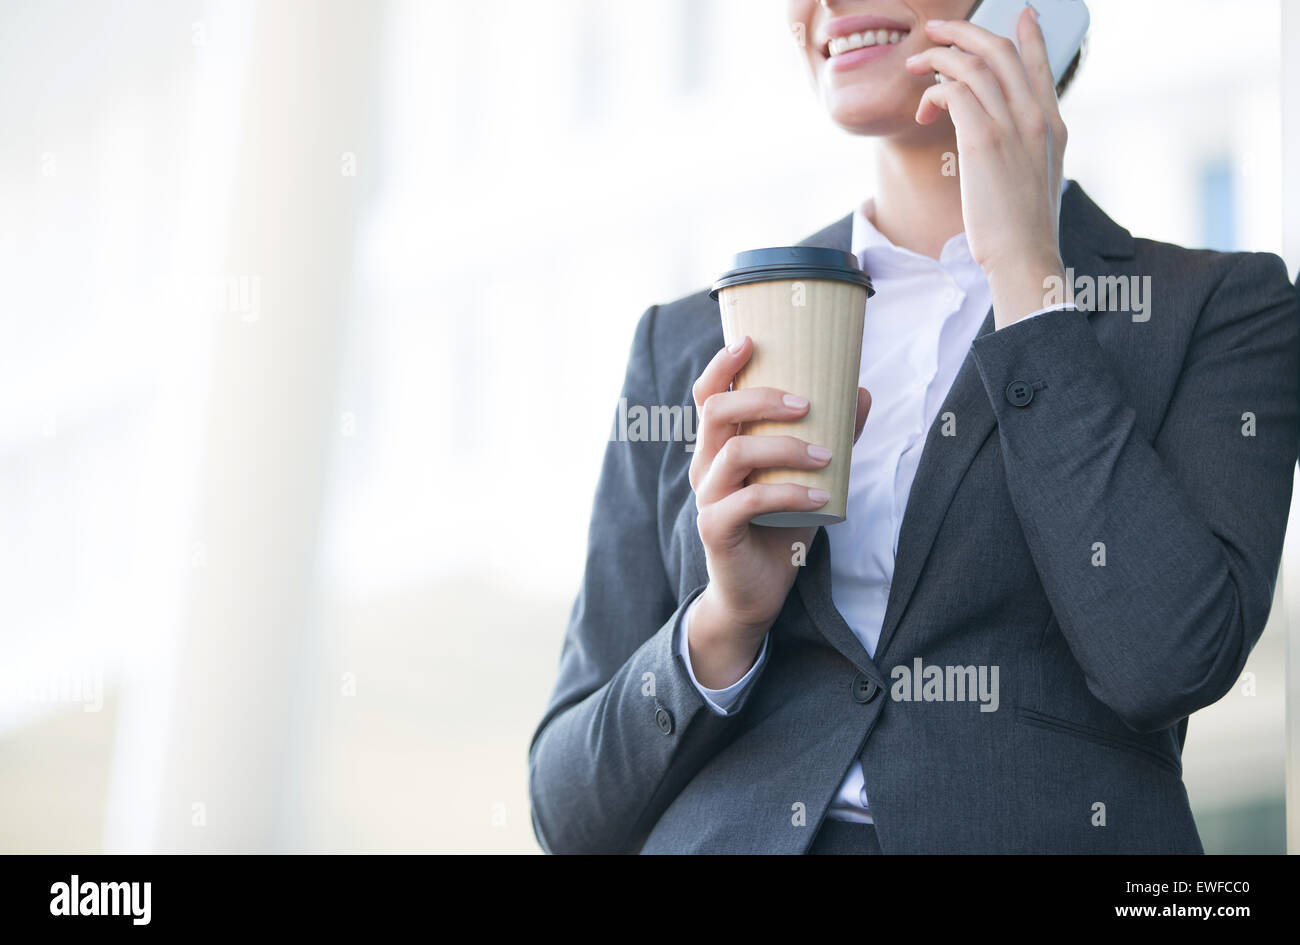 Midsection of businesswoman using cell phone while holding disposable cup outdoors - Stock Image